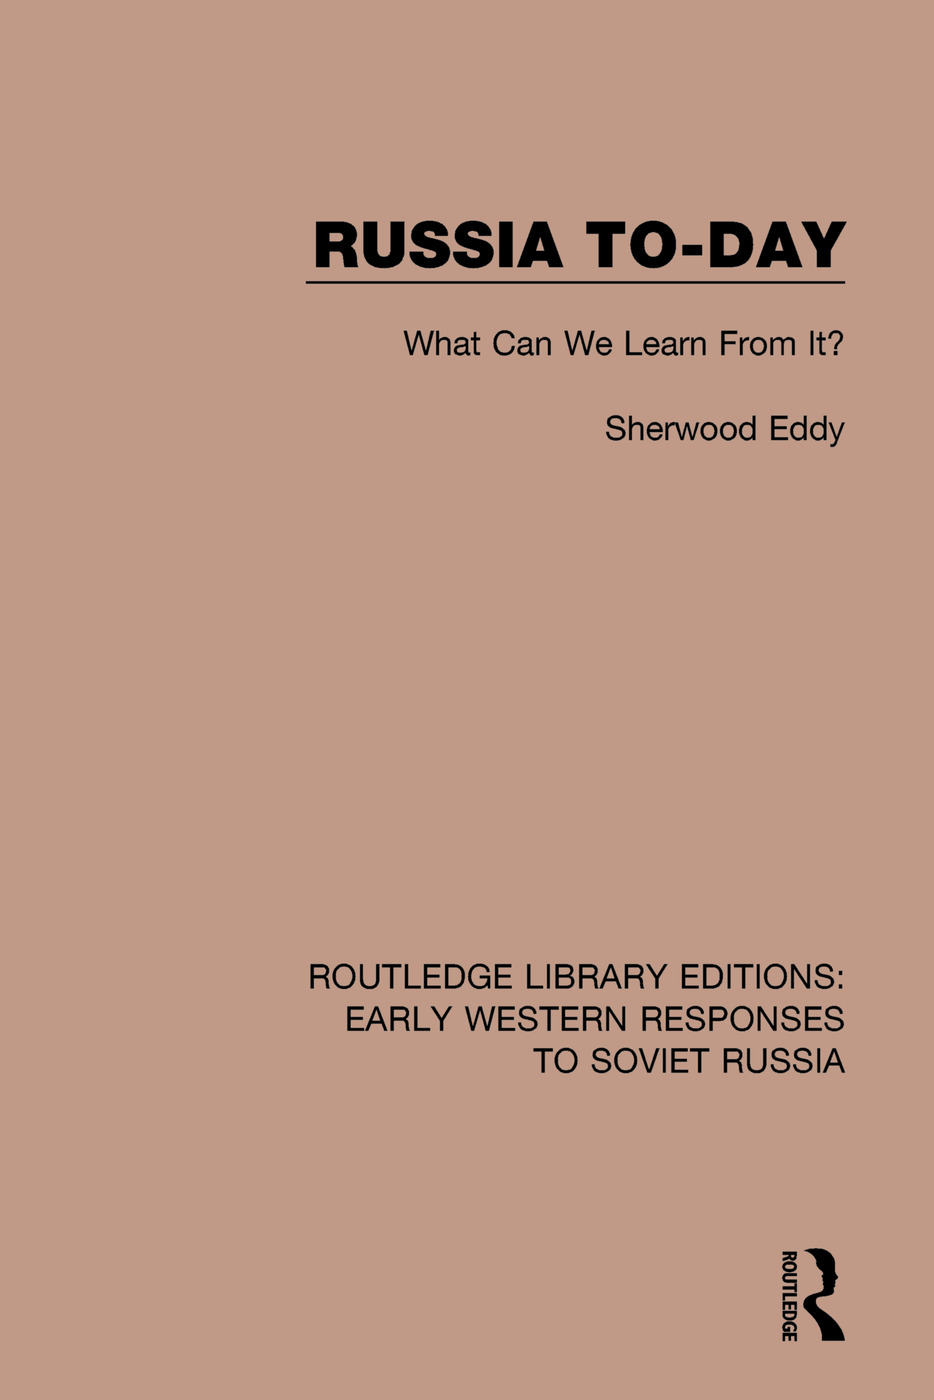 Russia To-Day: What Can We Learn From It? book cover